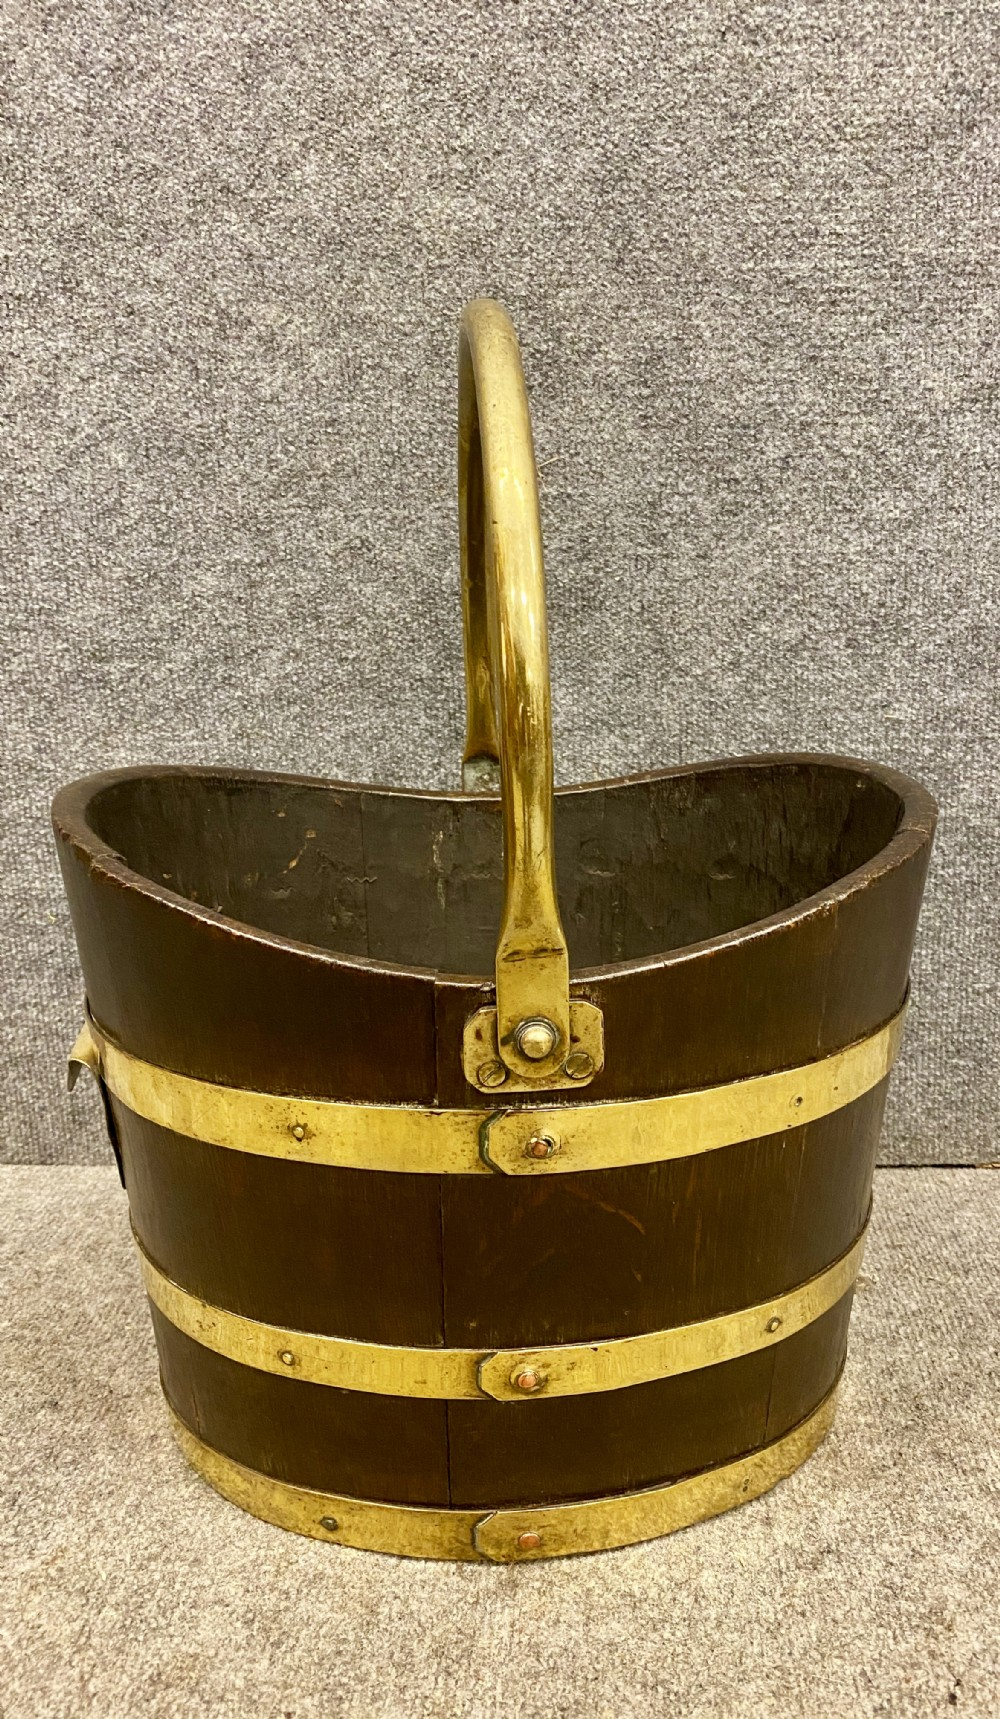 19thcentiury brass bound bucket